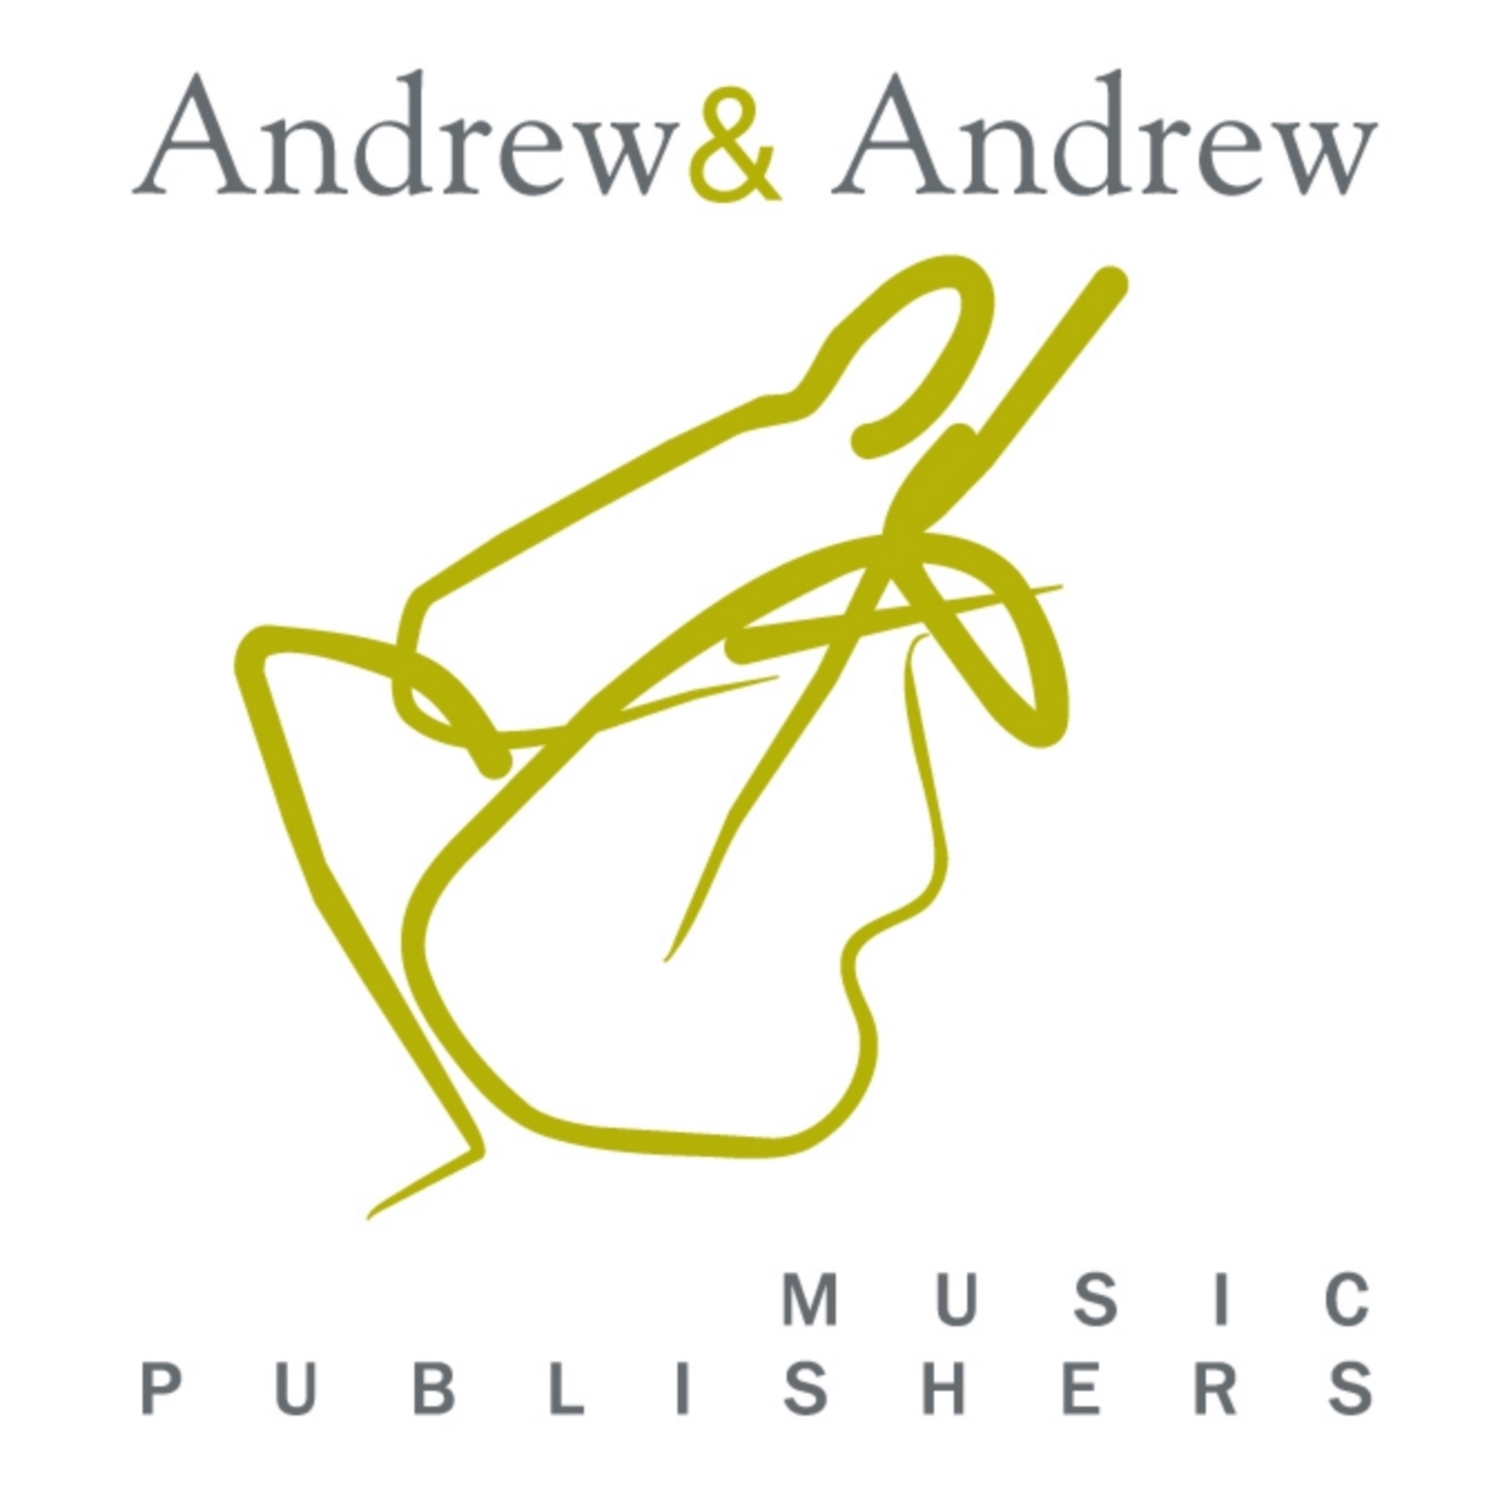 Andrew & Andrew Music Publishing Ltd